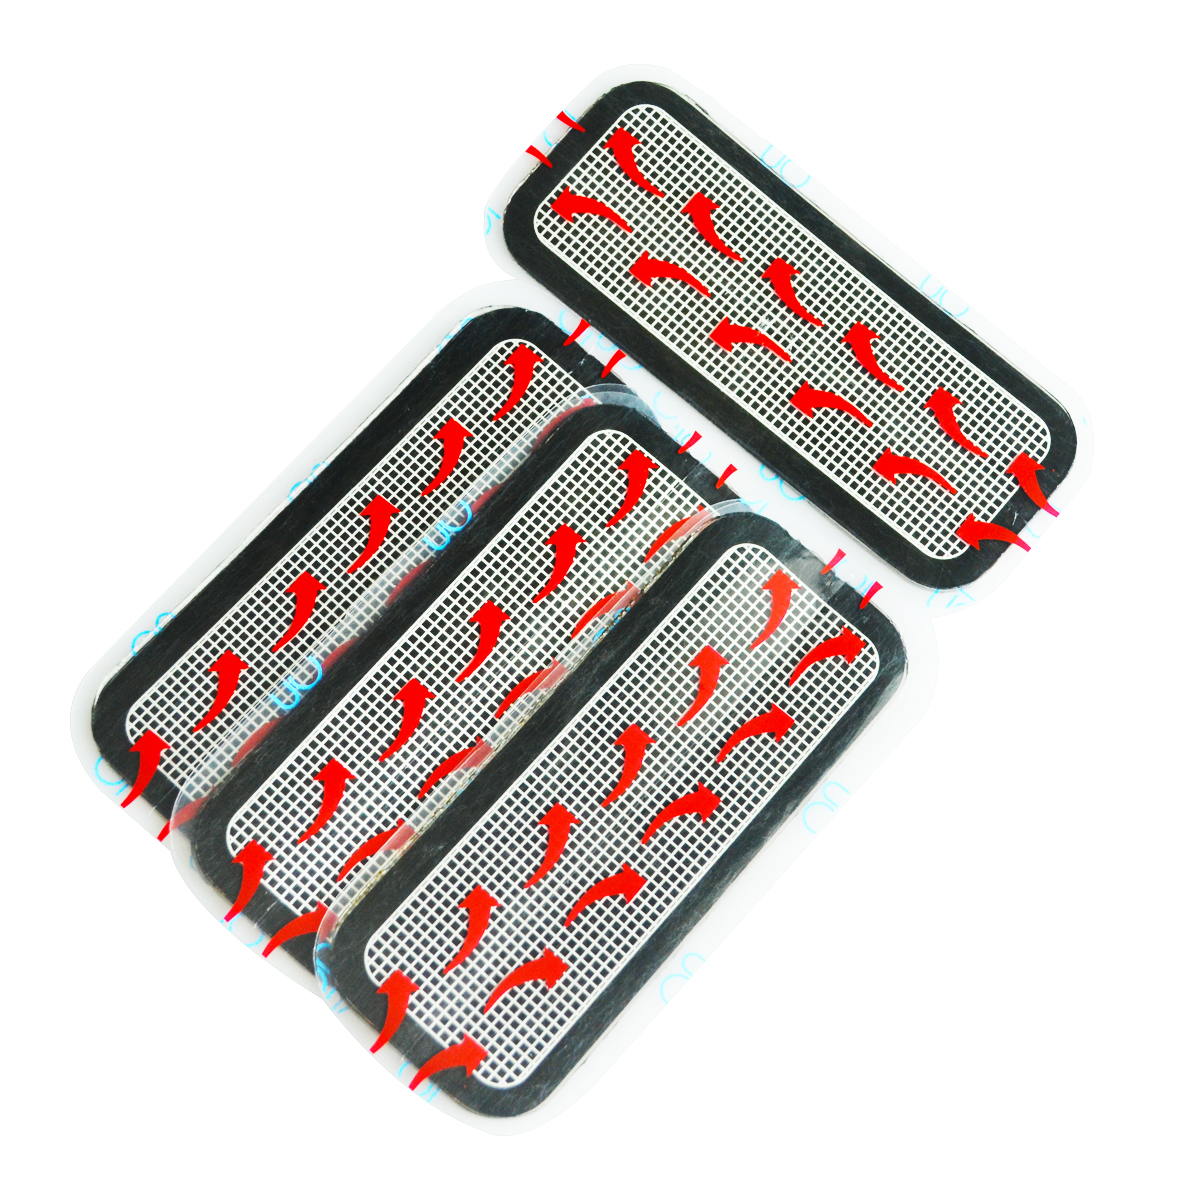 3 Packs of Buttock thigh Replacement Gel Pads massager pads